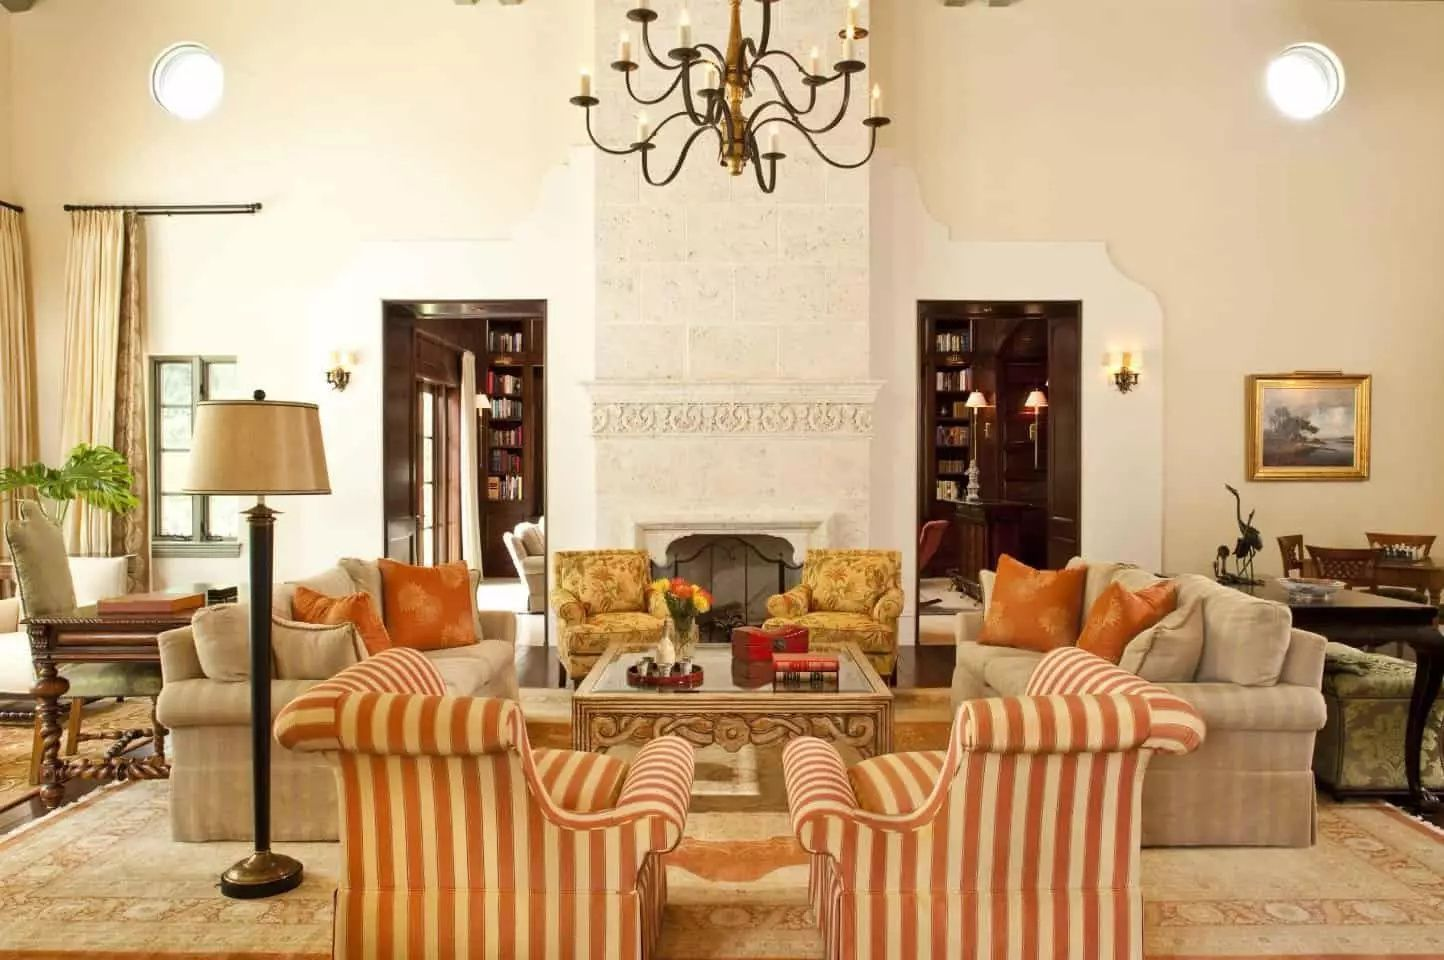 50 Spanish Style Living Room Ideas Photos In 2020 Spanish Living Room Home Decor Leather Living Room Furniture #spanish #style #living #room #furniture